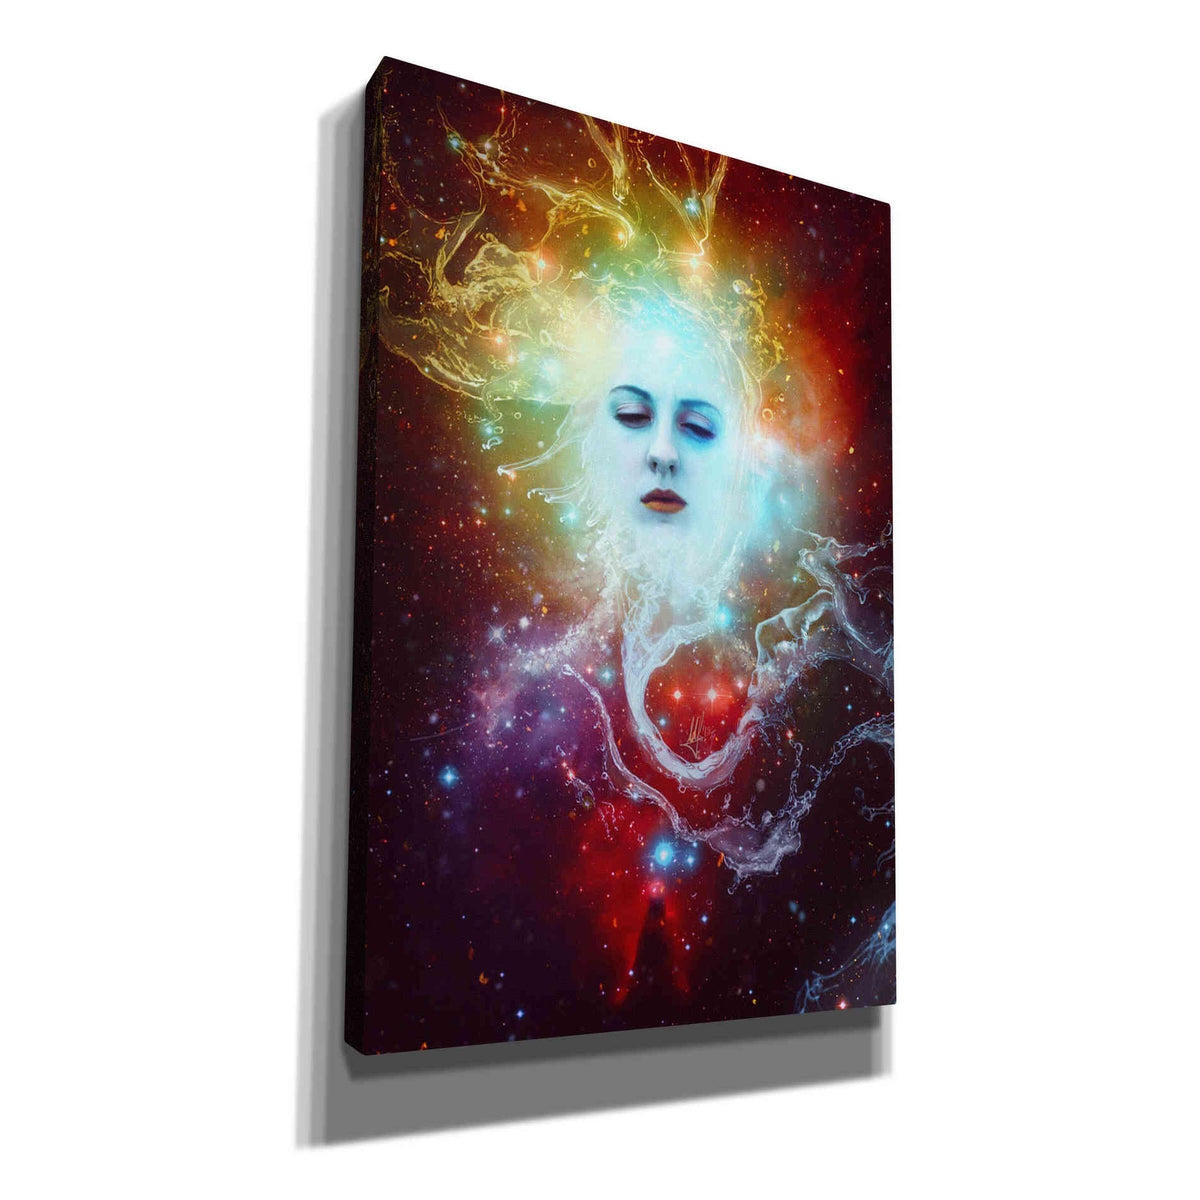 Cortesi Home 'Conscience' by Mario Sanchez Nevado, Canvas Wall Art,Size A Portrait